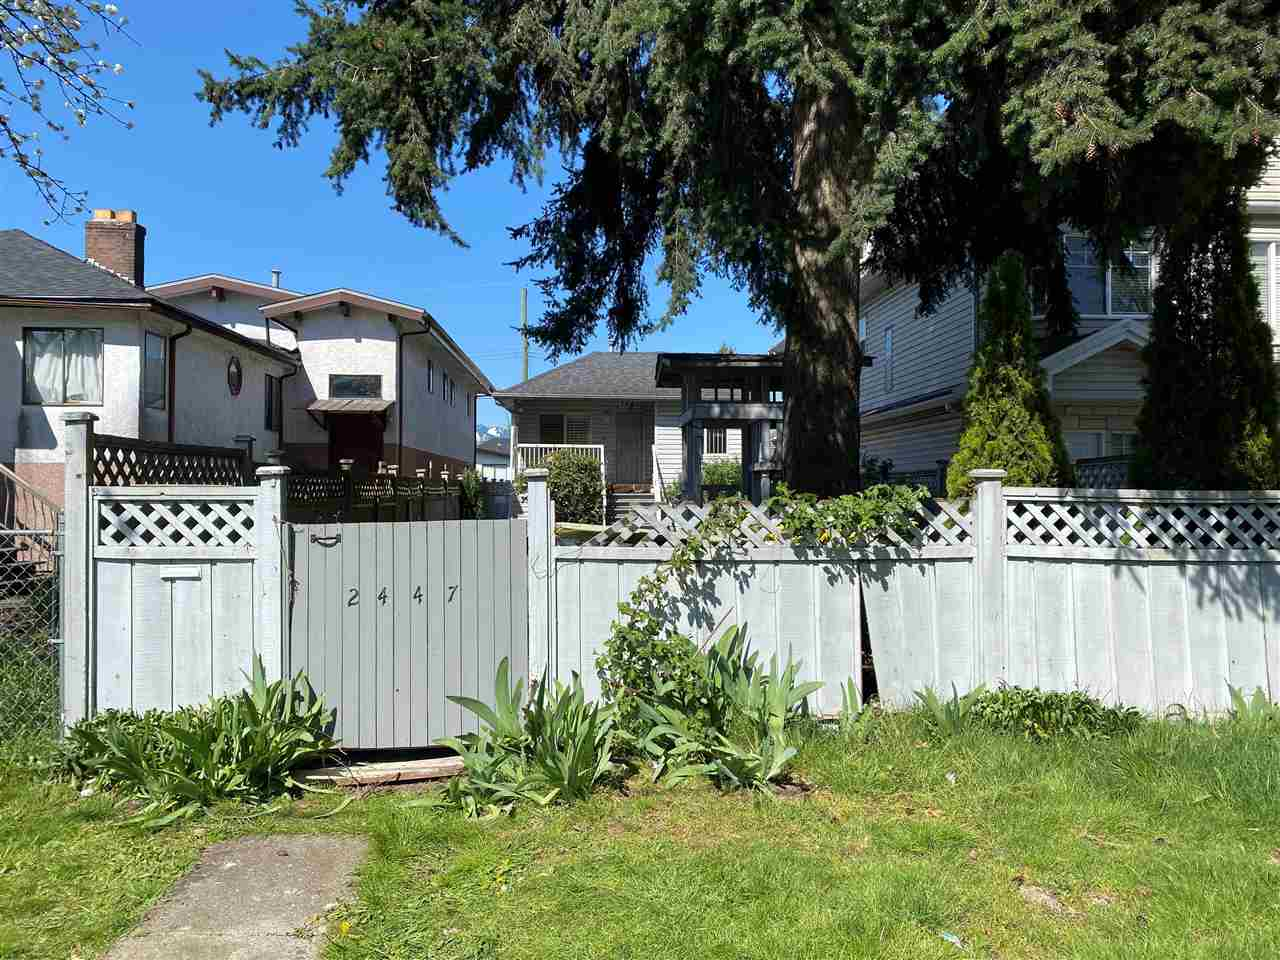 2447 E 41ST AVENUE - Collingwood VE House/Single Family for sale, 4 Bedrooms (R2568492) - #1